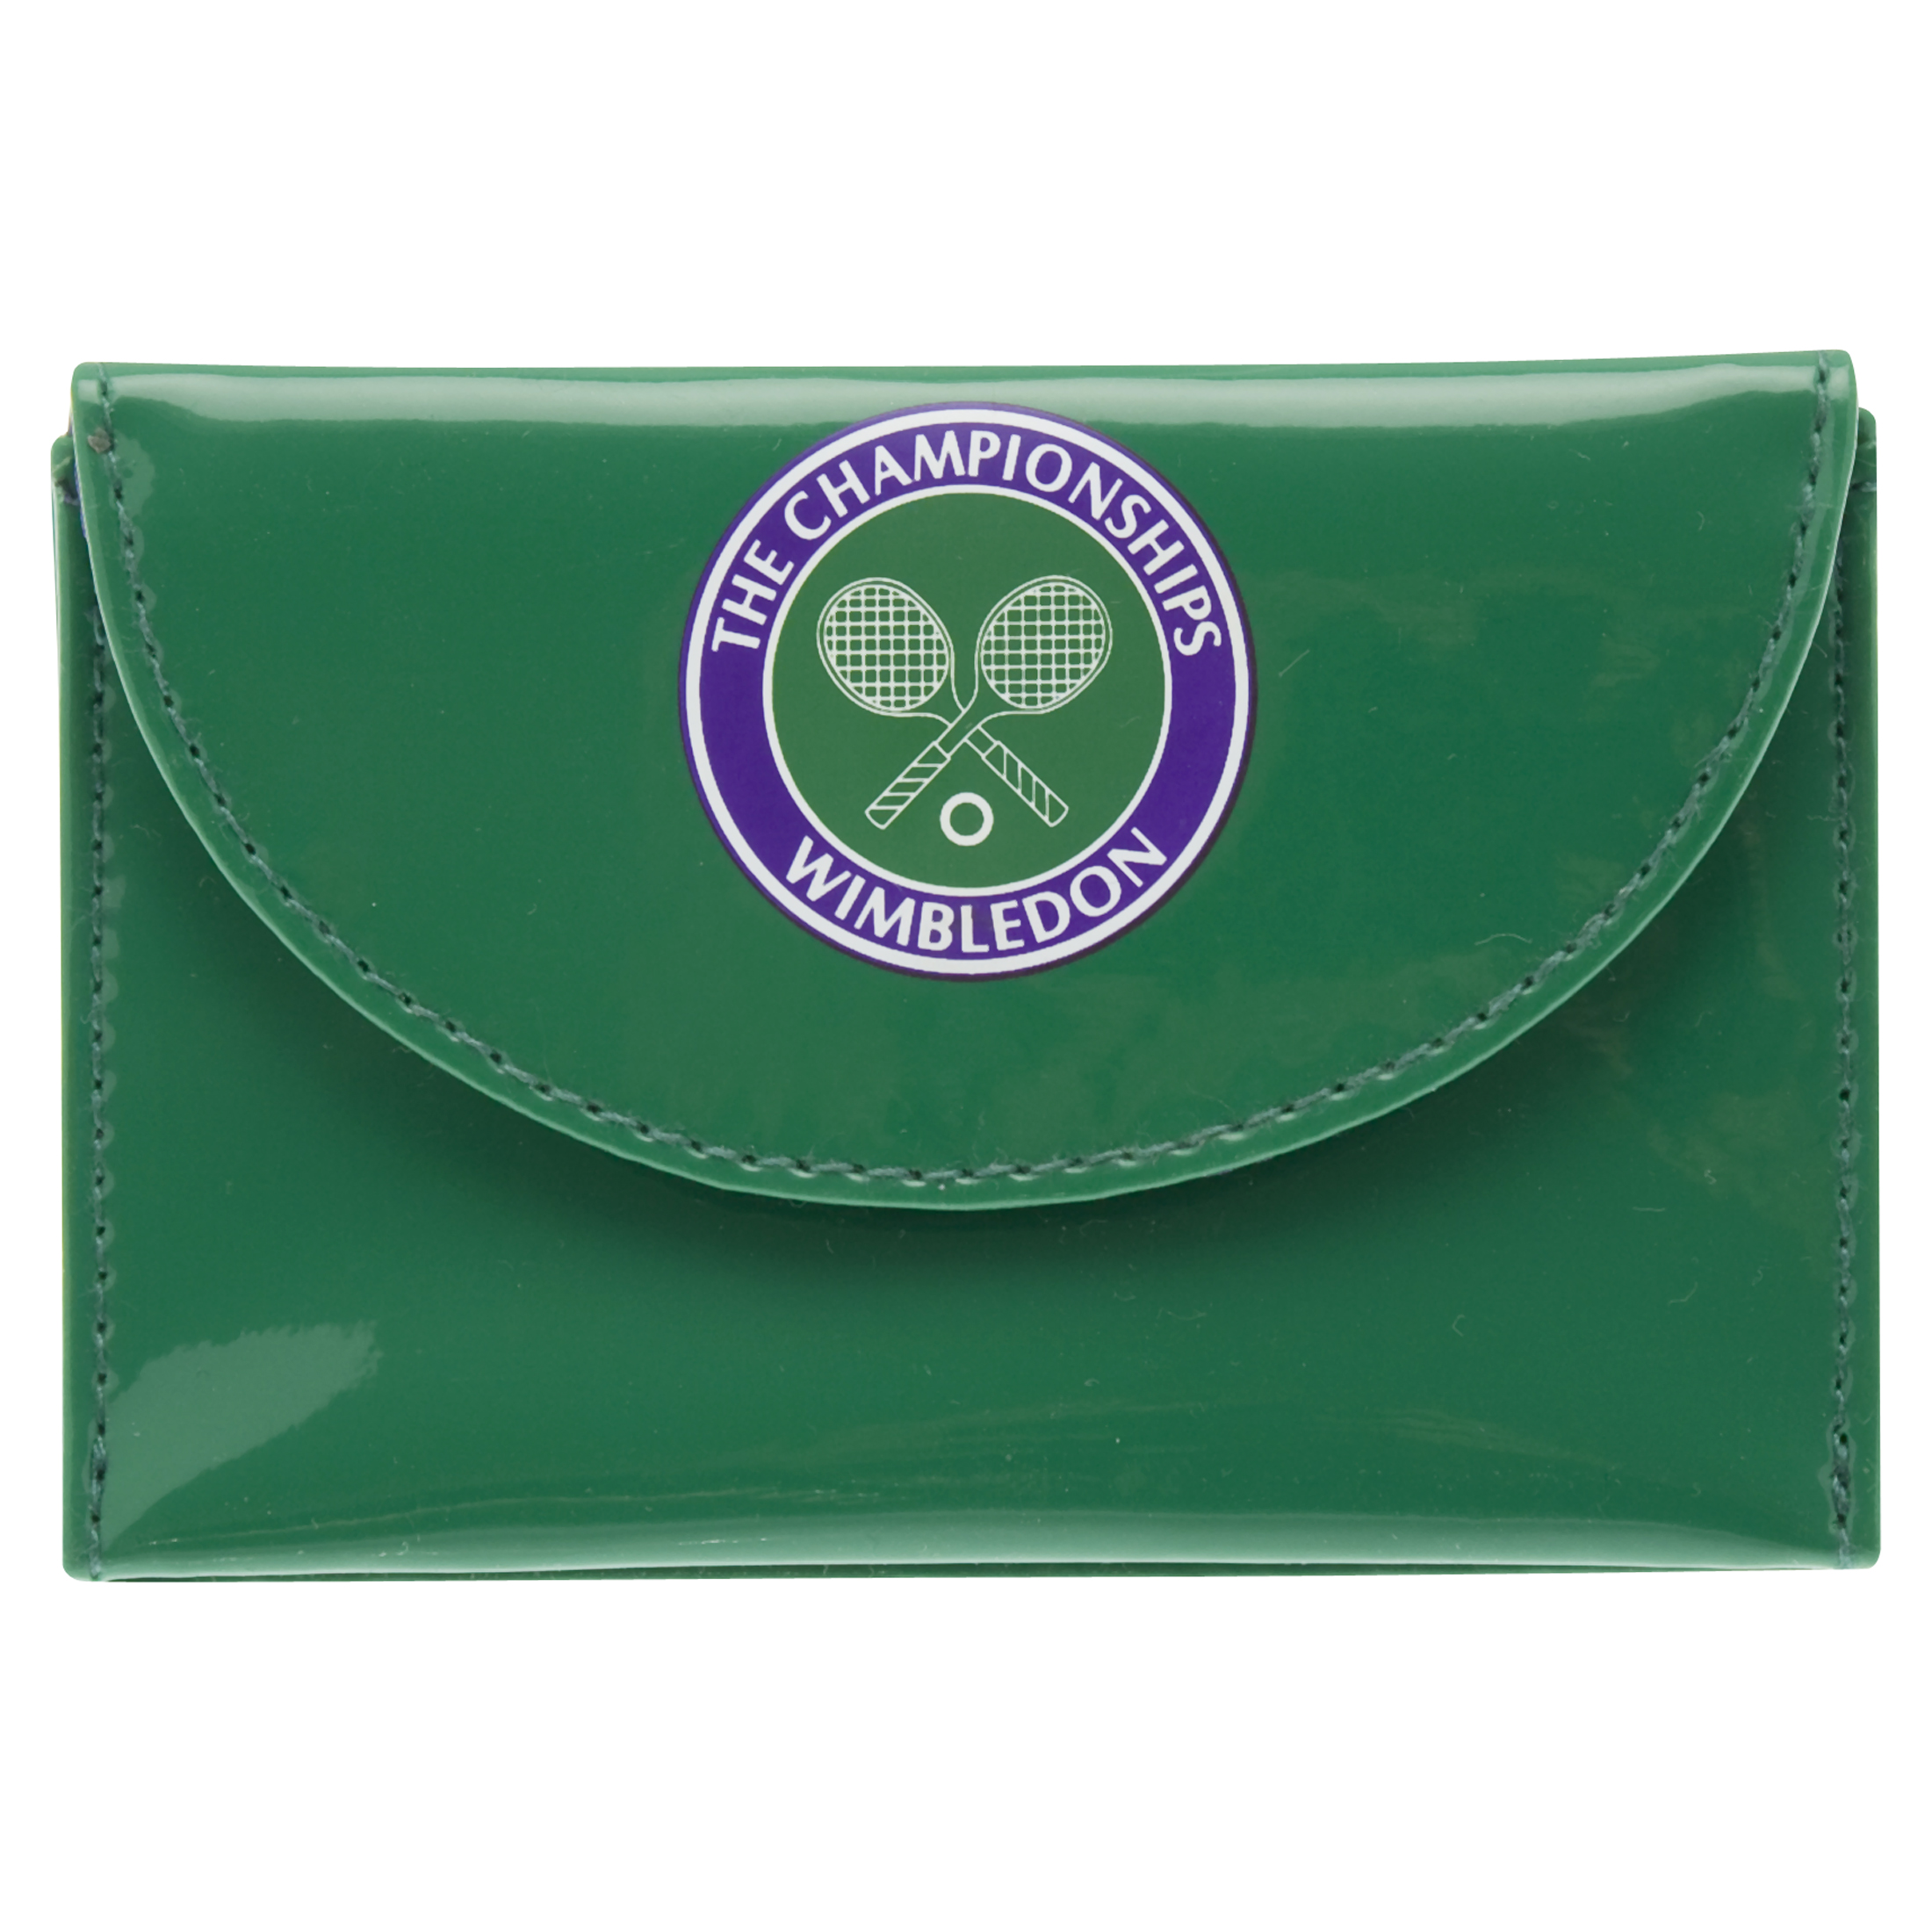 Wimbledon PVC Purse and Travel Card Holder